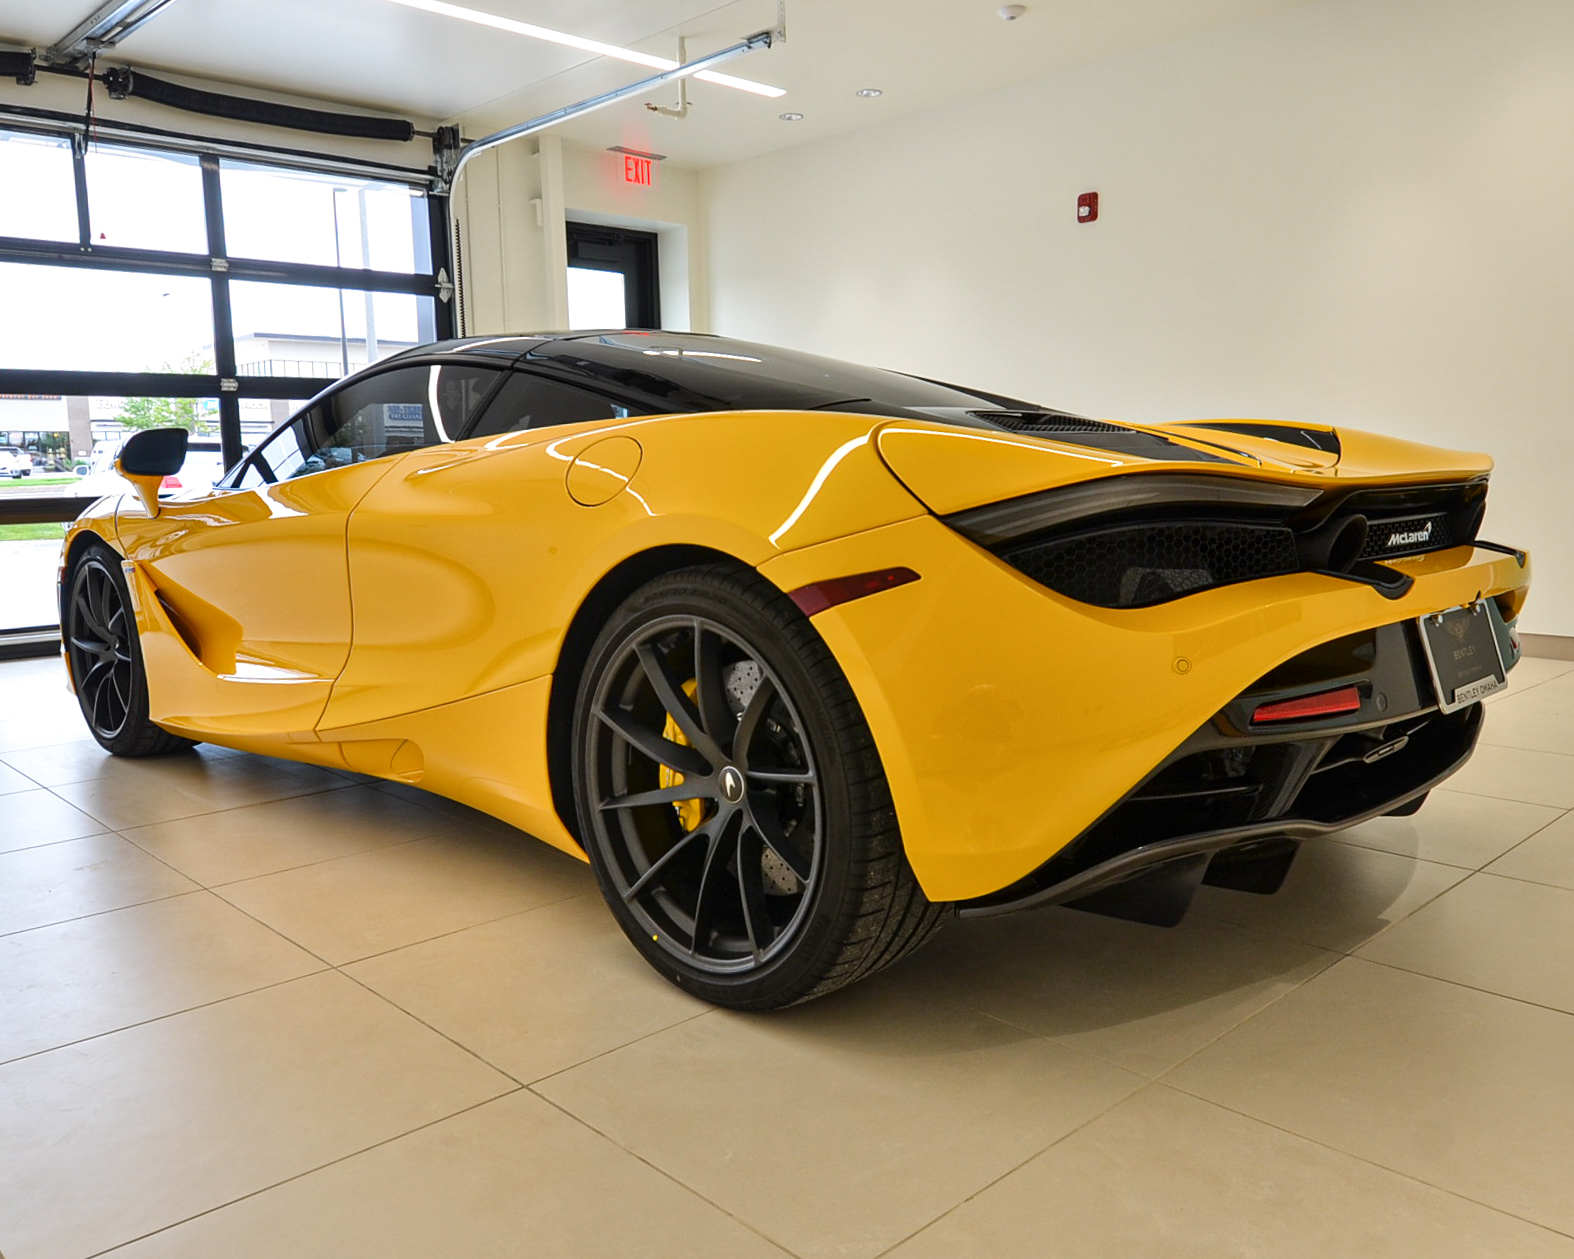 Uploads 2f07 yellow 720s.jpg   1560352022033   4tofgxr0zin   vehicleimage   333511   07 yellow 720s